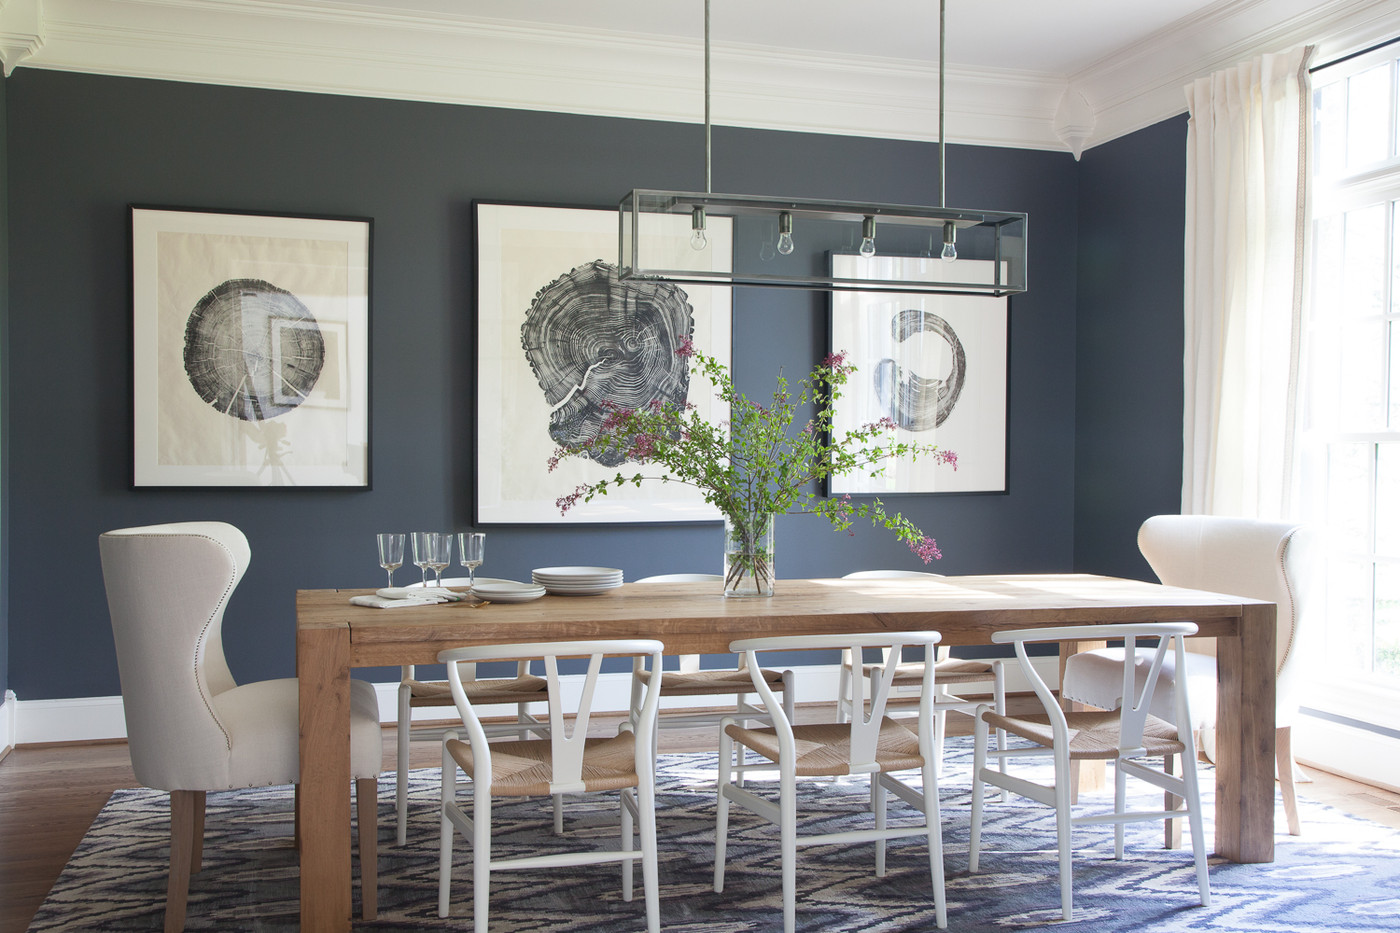 Dining room photos 151 of 1402 - Chic renovation design ideas with rustic exterior and modern interior ...